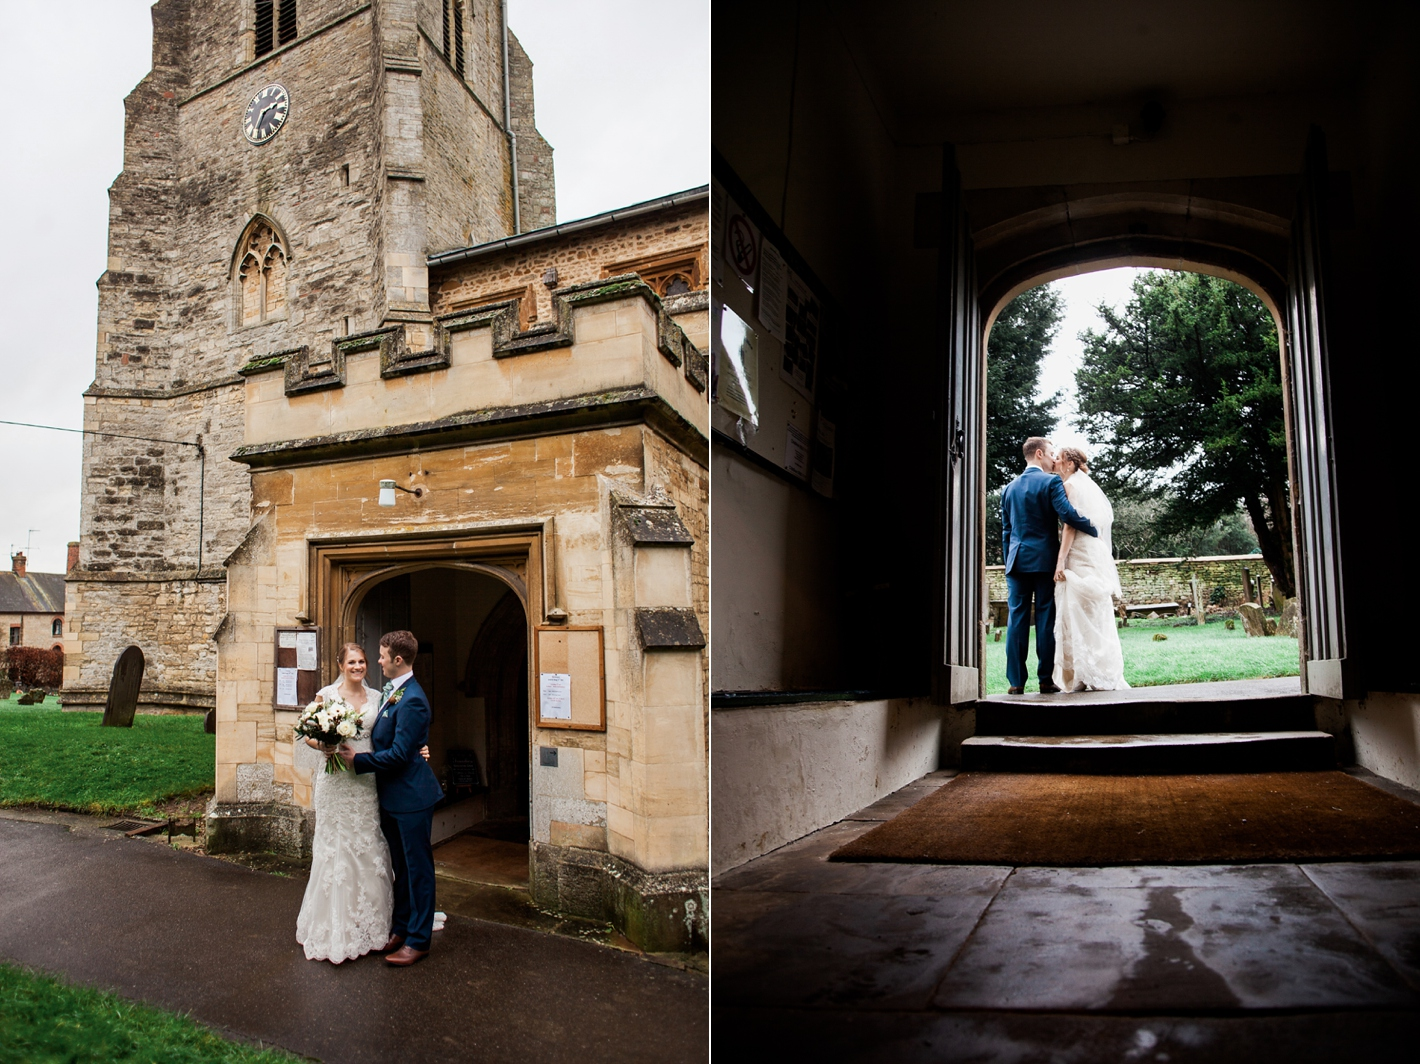 Emily + Tom wedding photography Hampshire Wedding Photographer Lilybean Photography 12